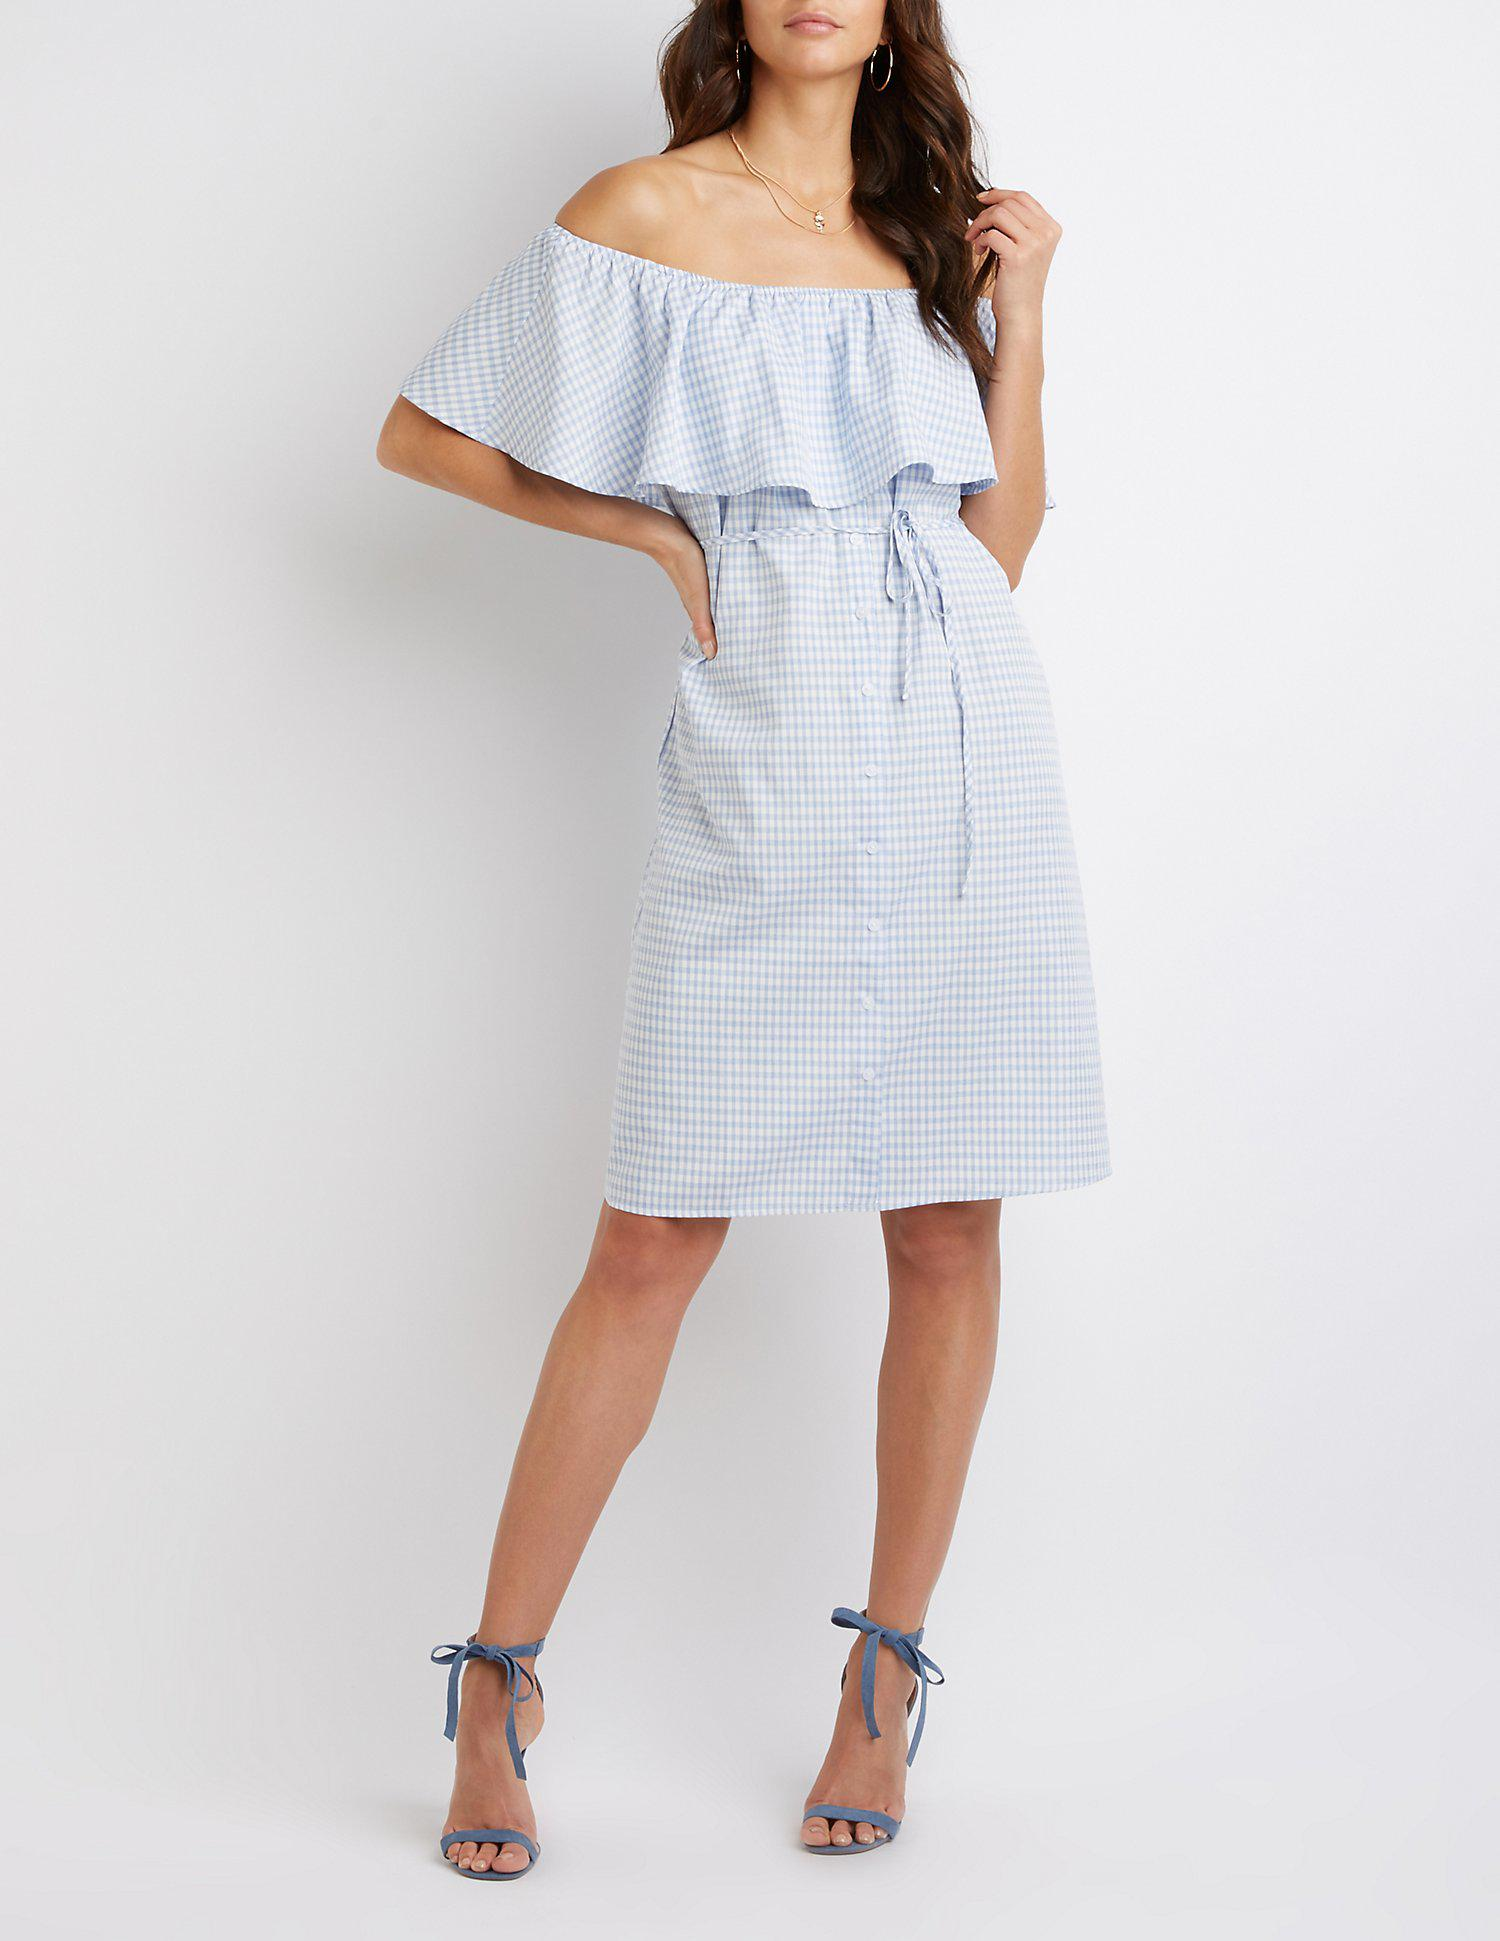 37bca8aab07 Lyst - Charlotte Russe Button-up Off-the-shoulder Dress in Blue